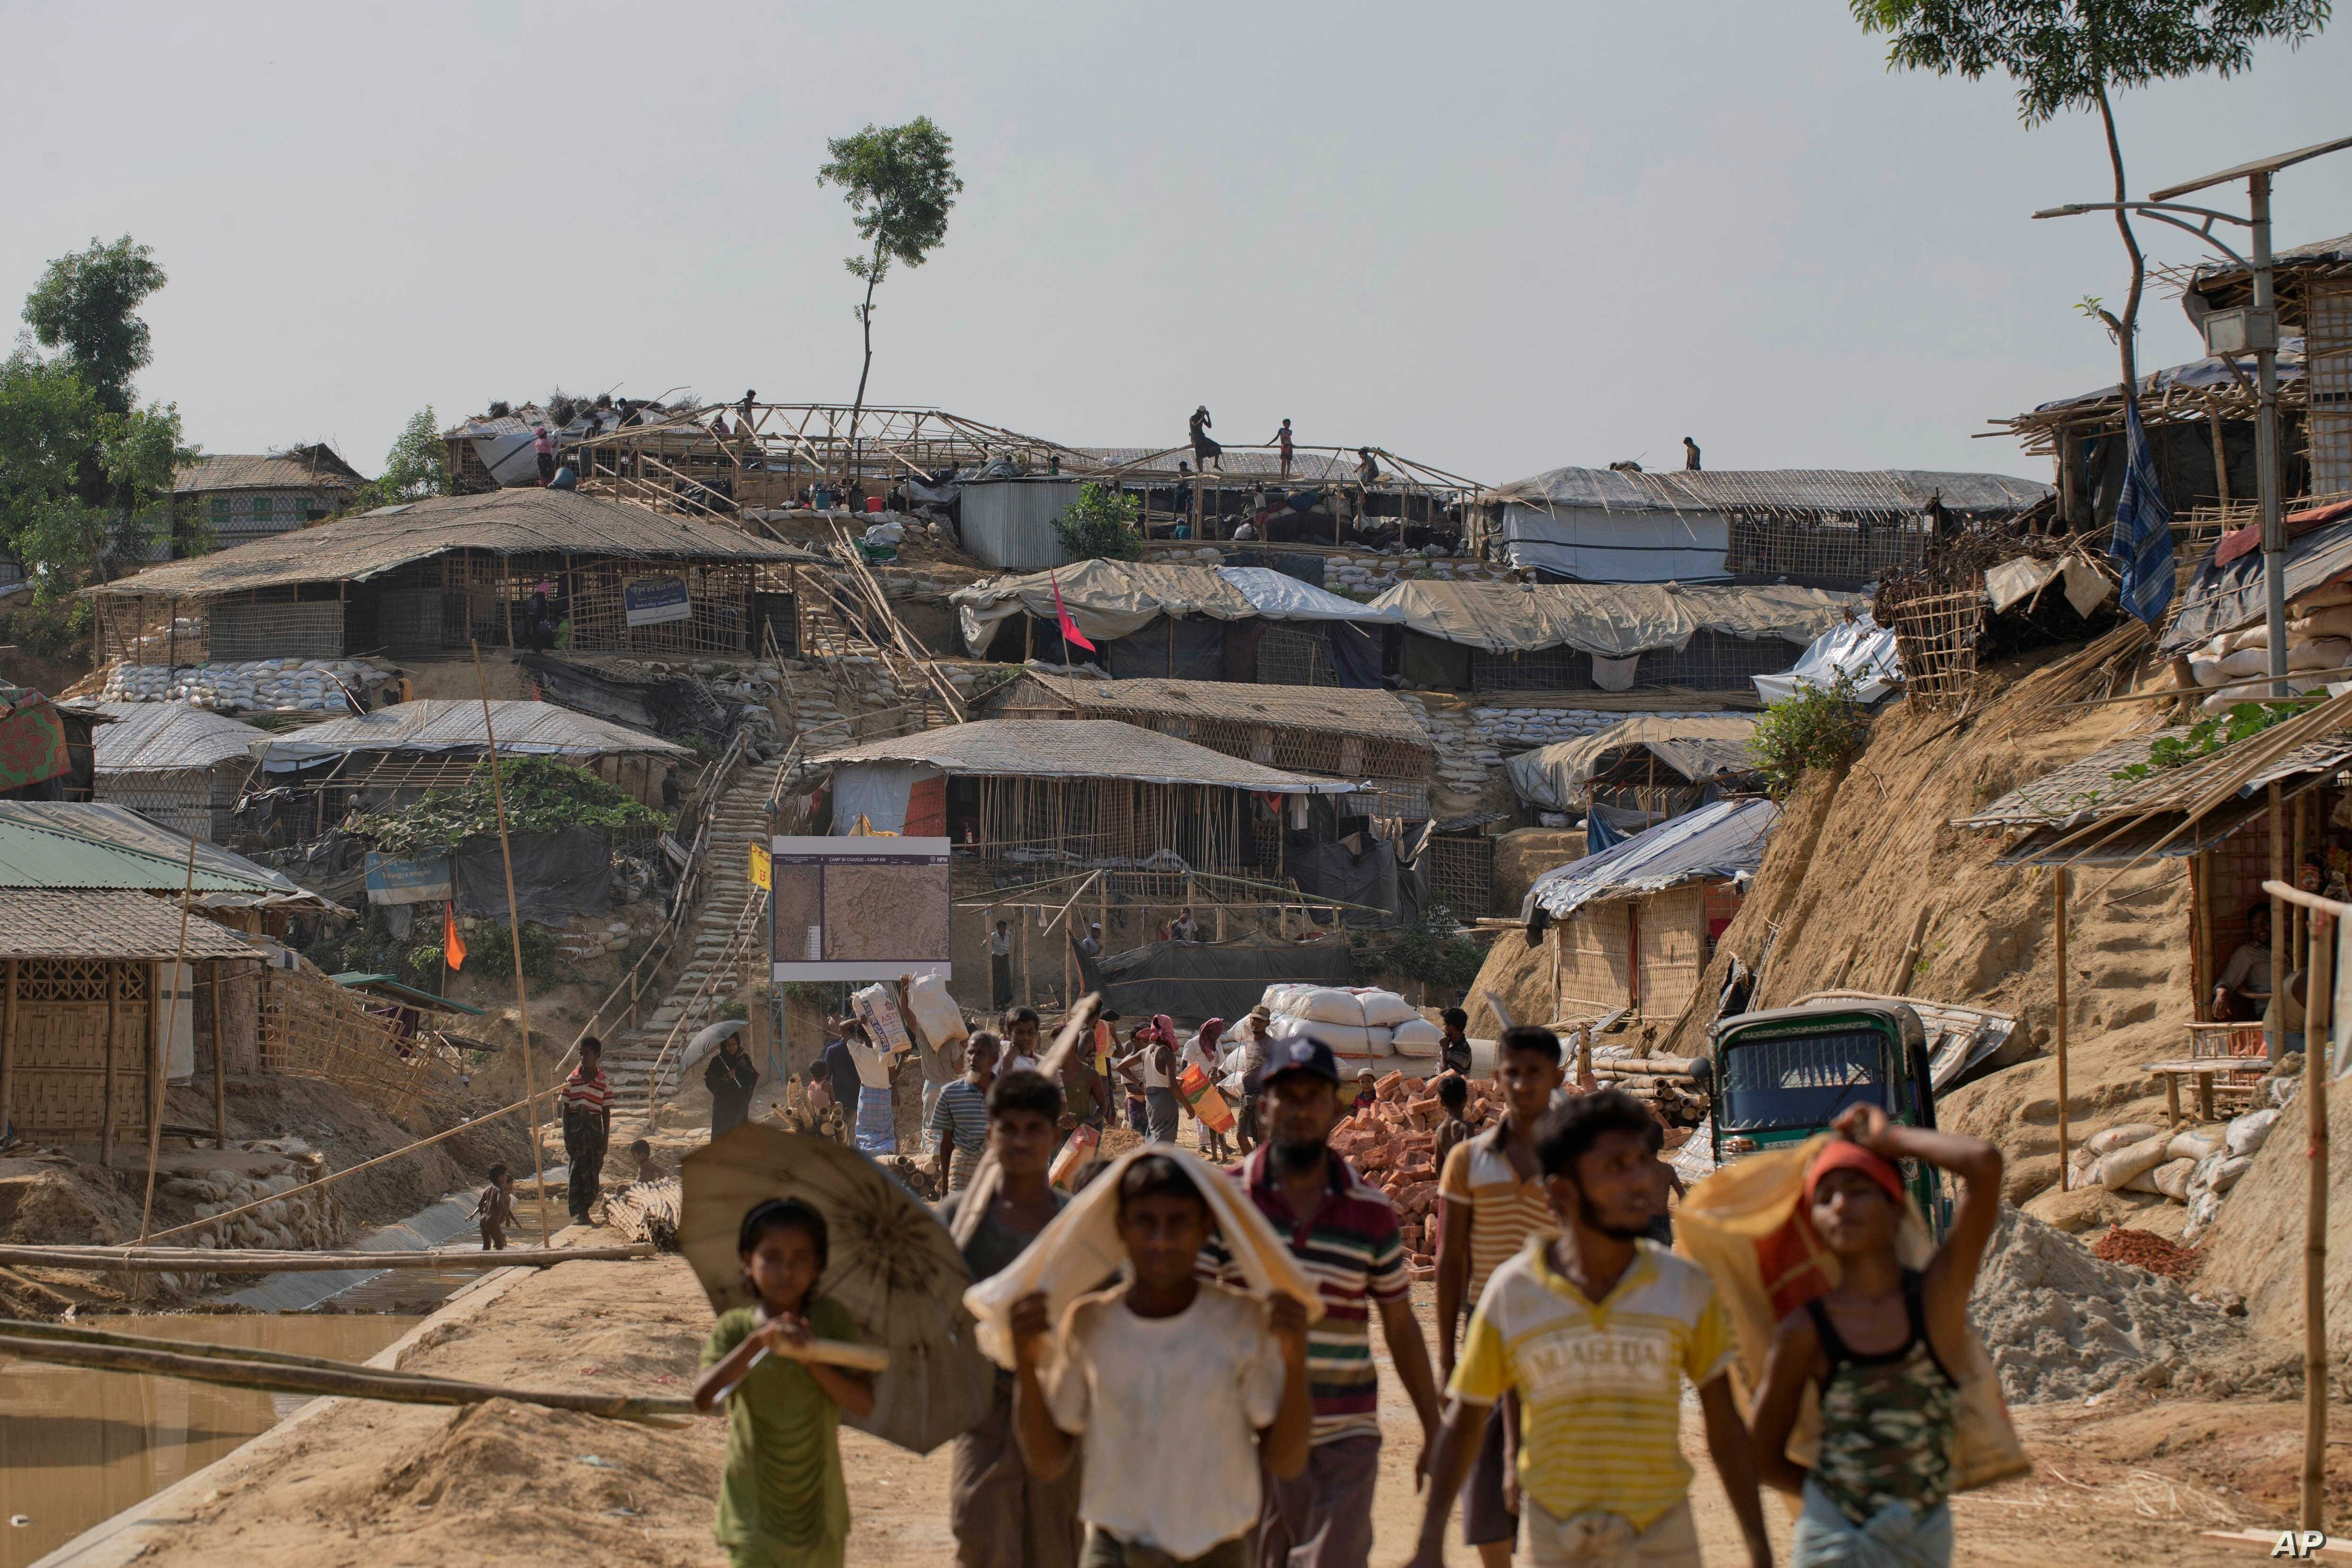 Rohingya refugees rebuild their makeshift houses, in preparation for the approaching monsoon season at the Kutupalong Rohingya refugee camp in Kutupalong, Bangladesh, April 28, 2018. Rohingya refugees who fled Myanmar during a brutal crackdown now fa